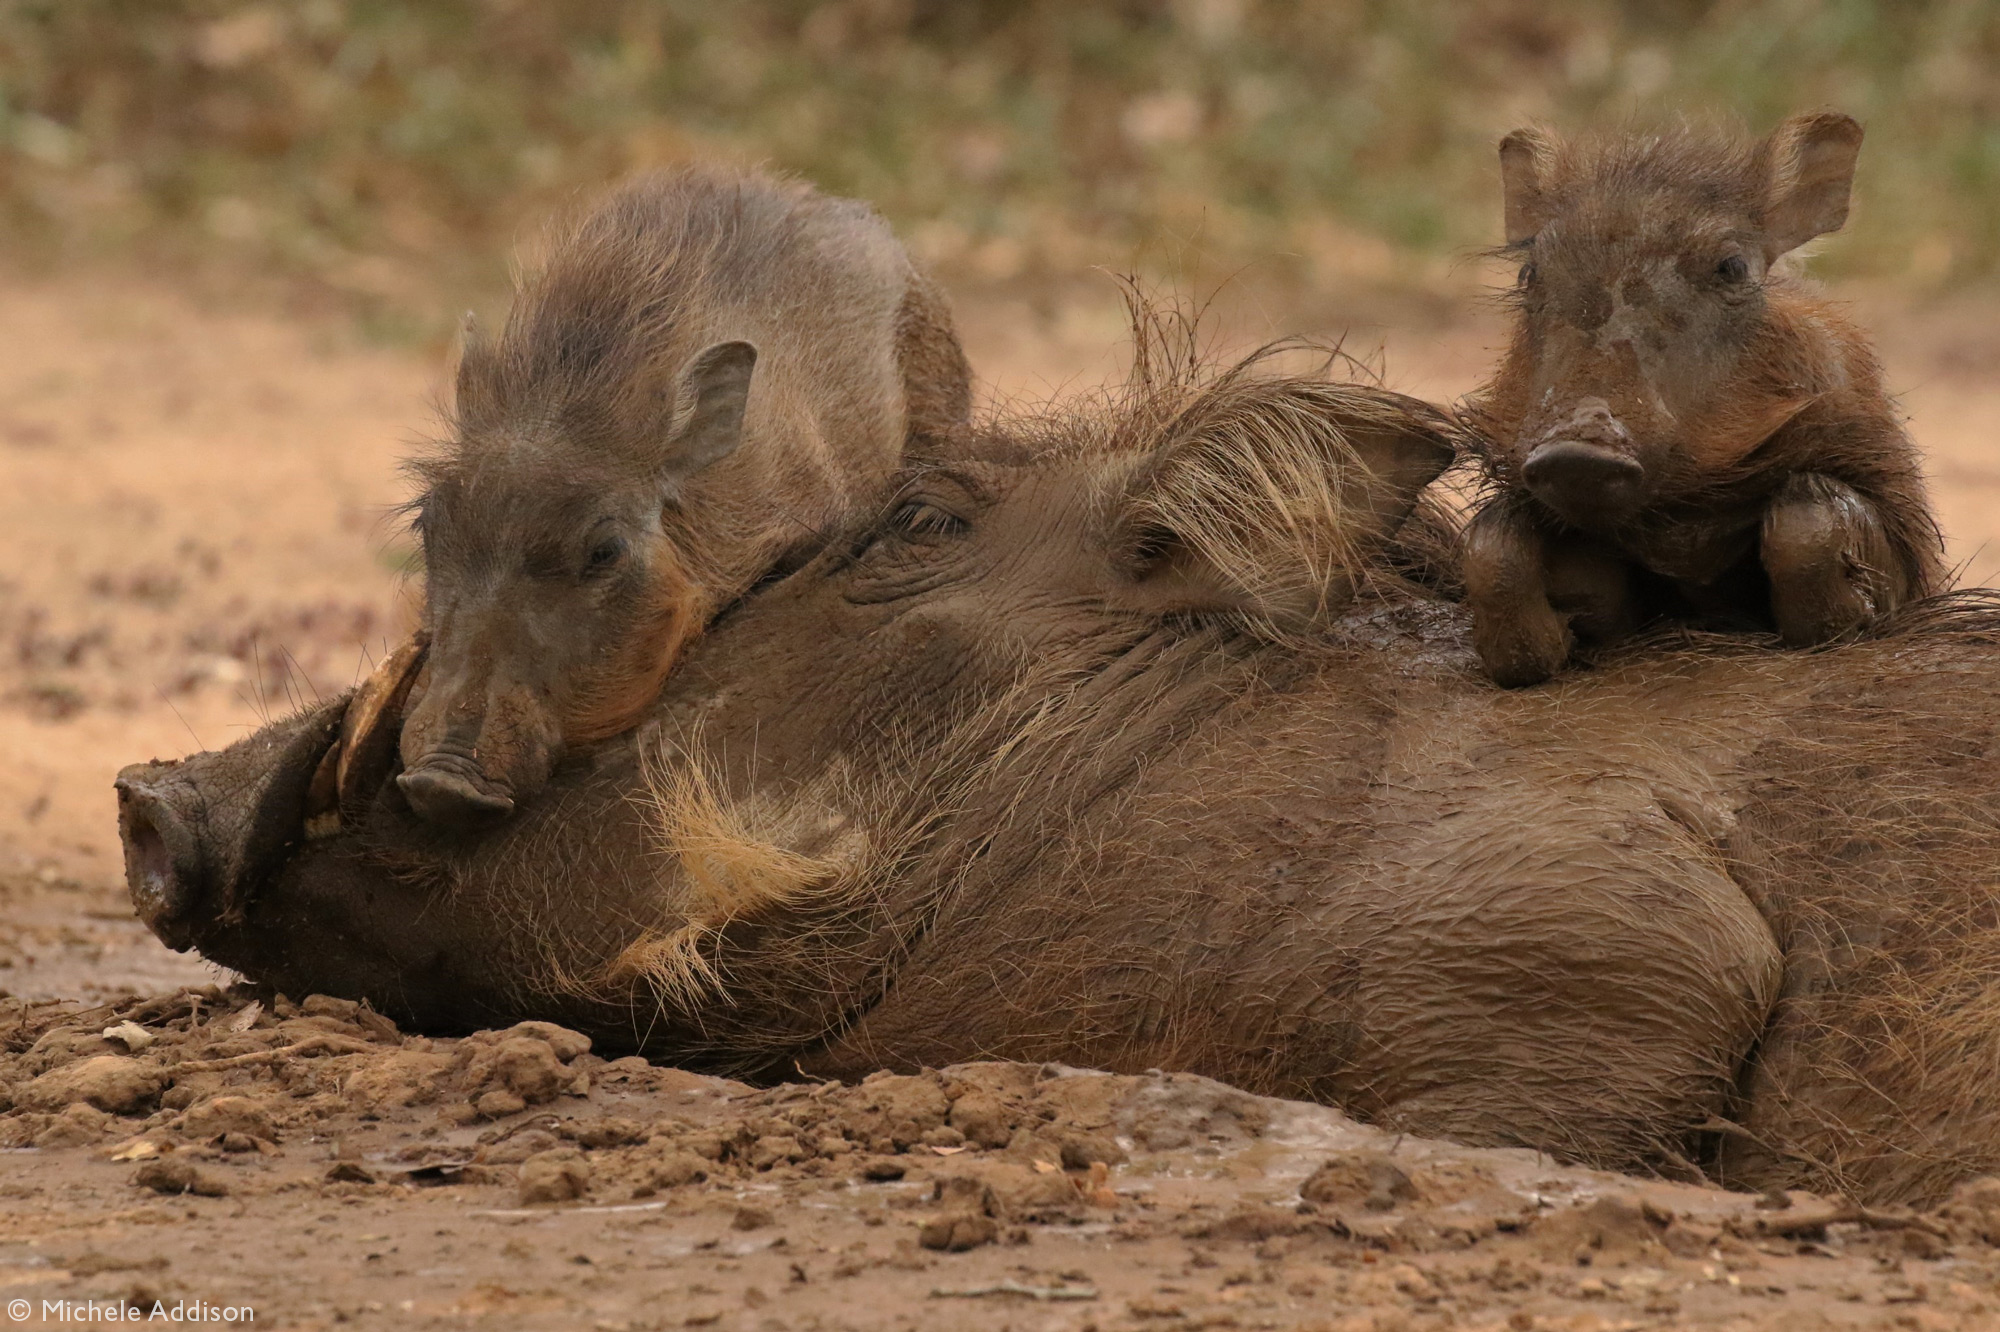 Two warthog piglets lying on their mother